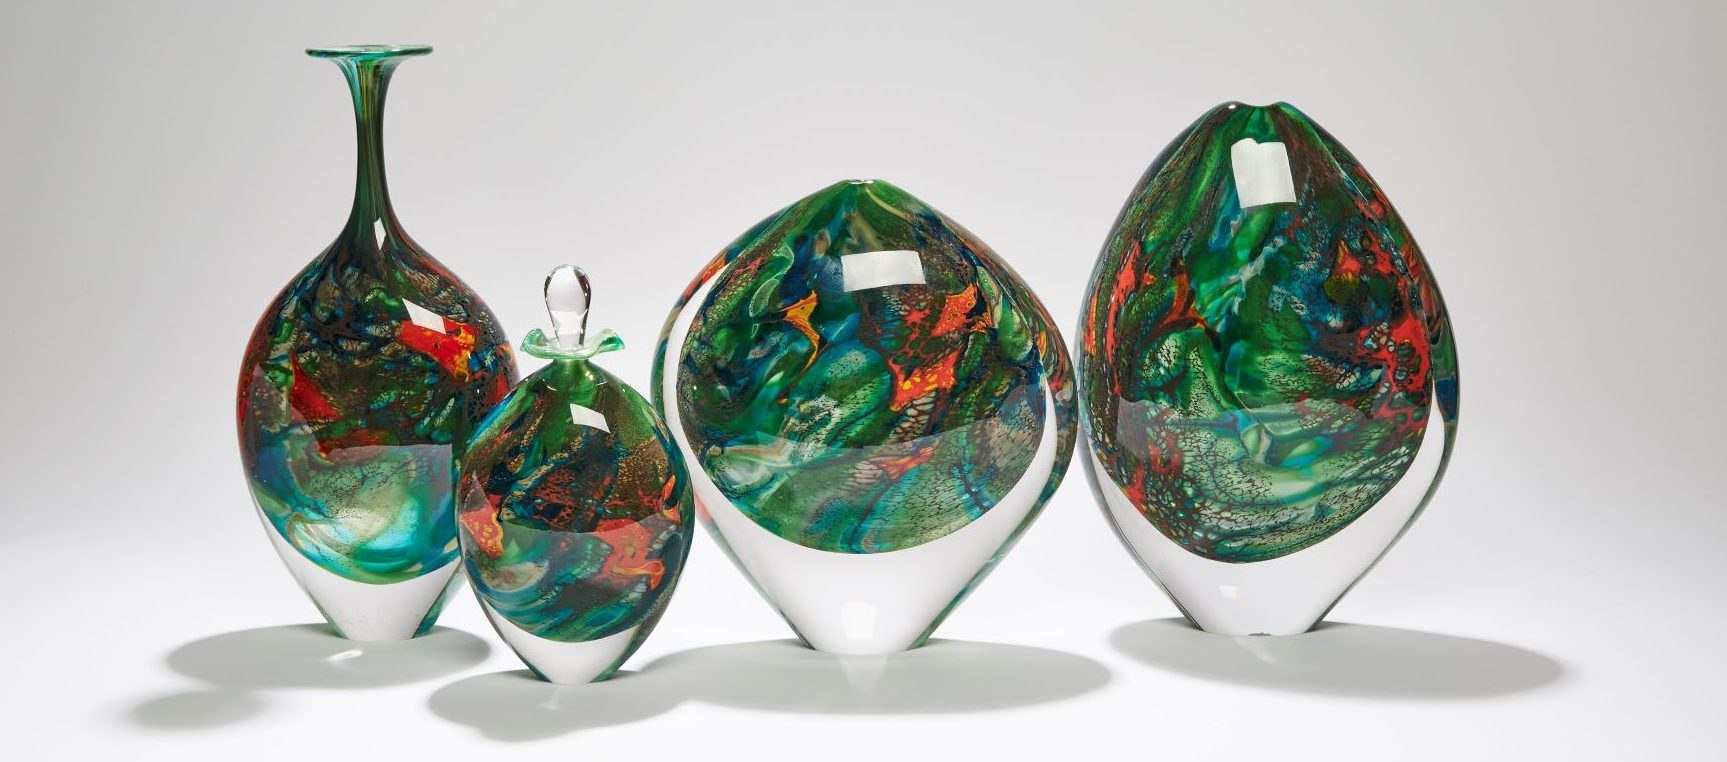 Gito by London Glassblowing